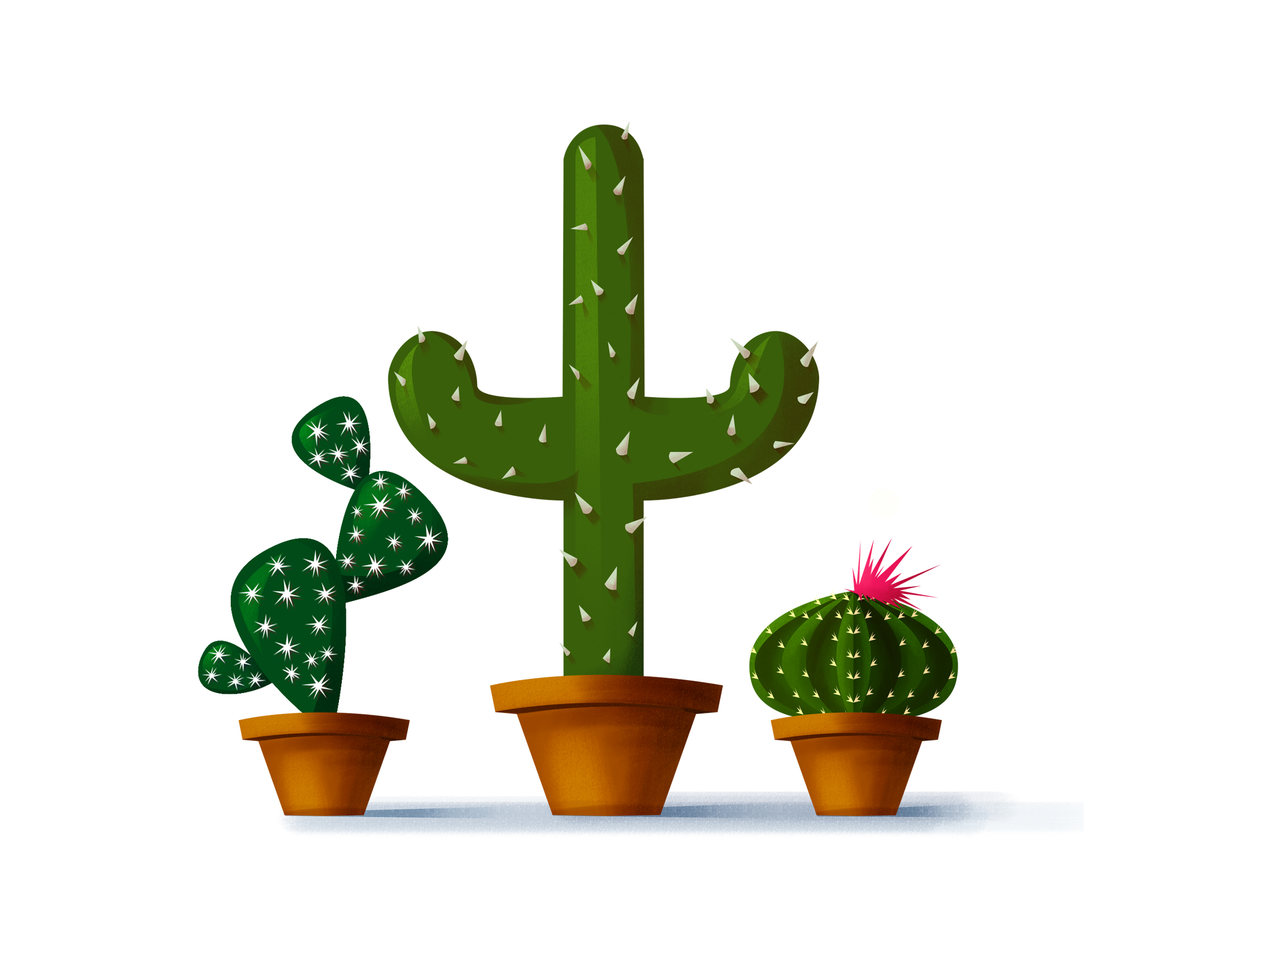 Cactus drawing png. How to create different